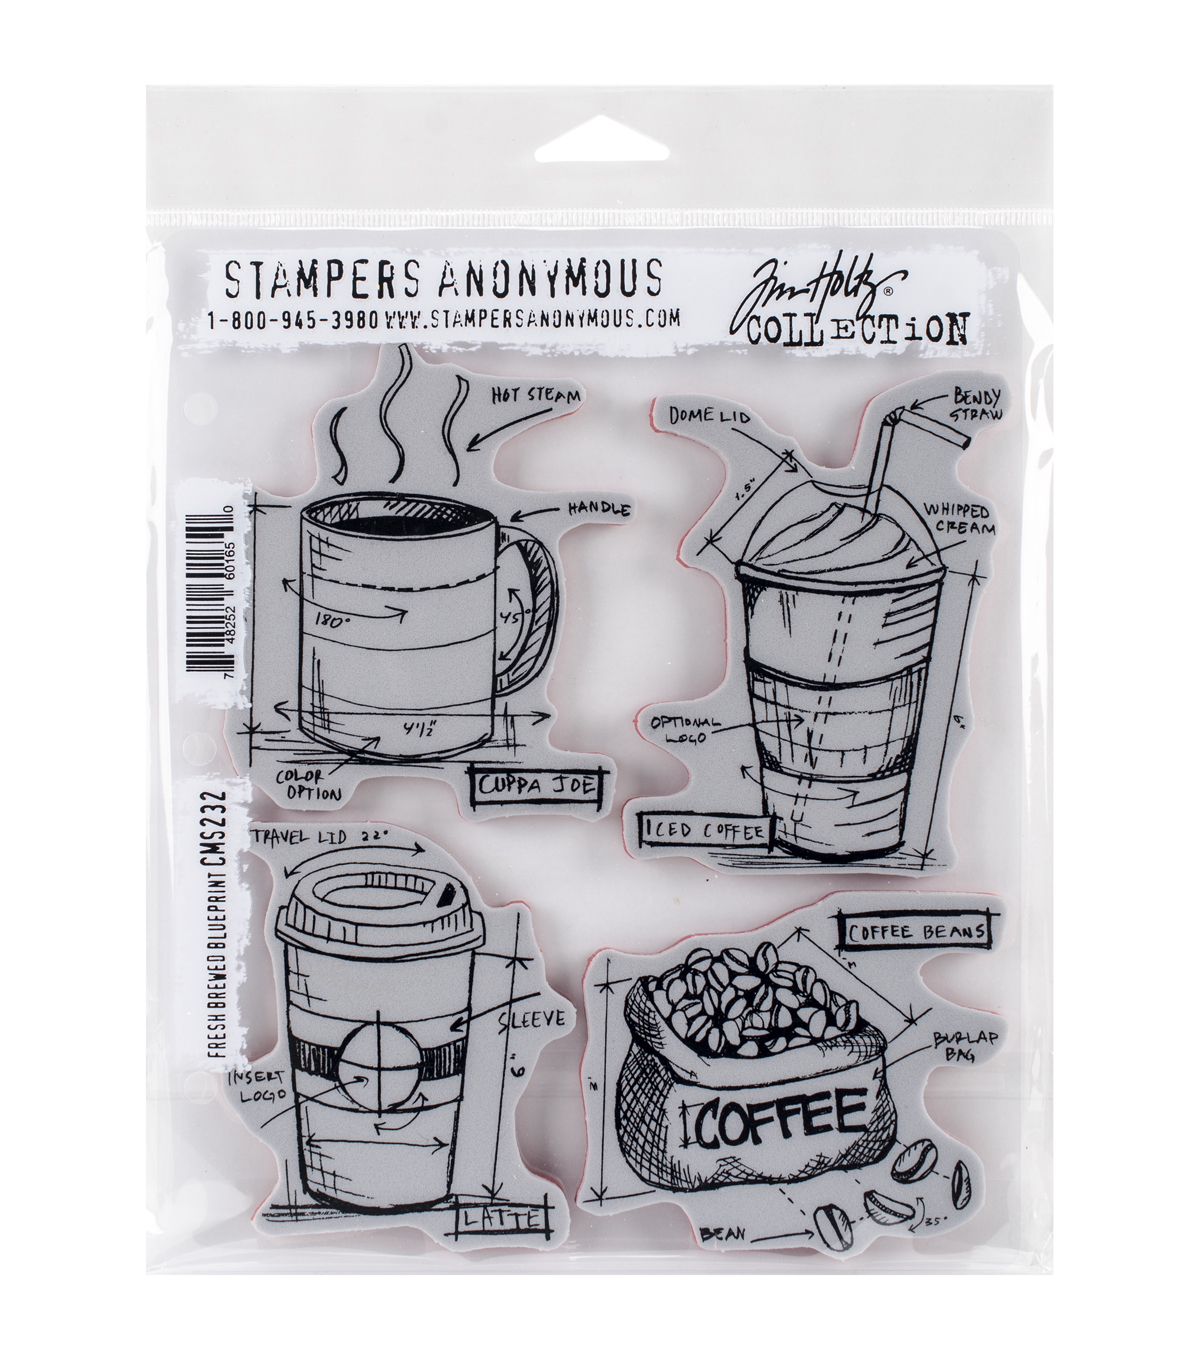 Stampers Anonymous Fresh Brewed Blueprint Cling Rubber Stamp Set